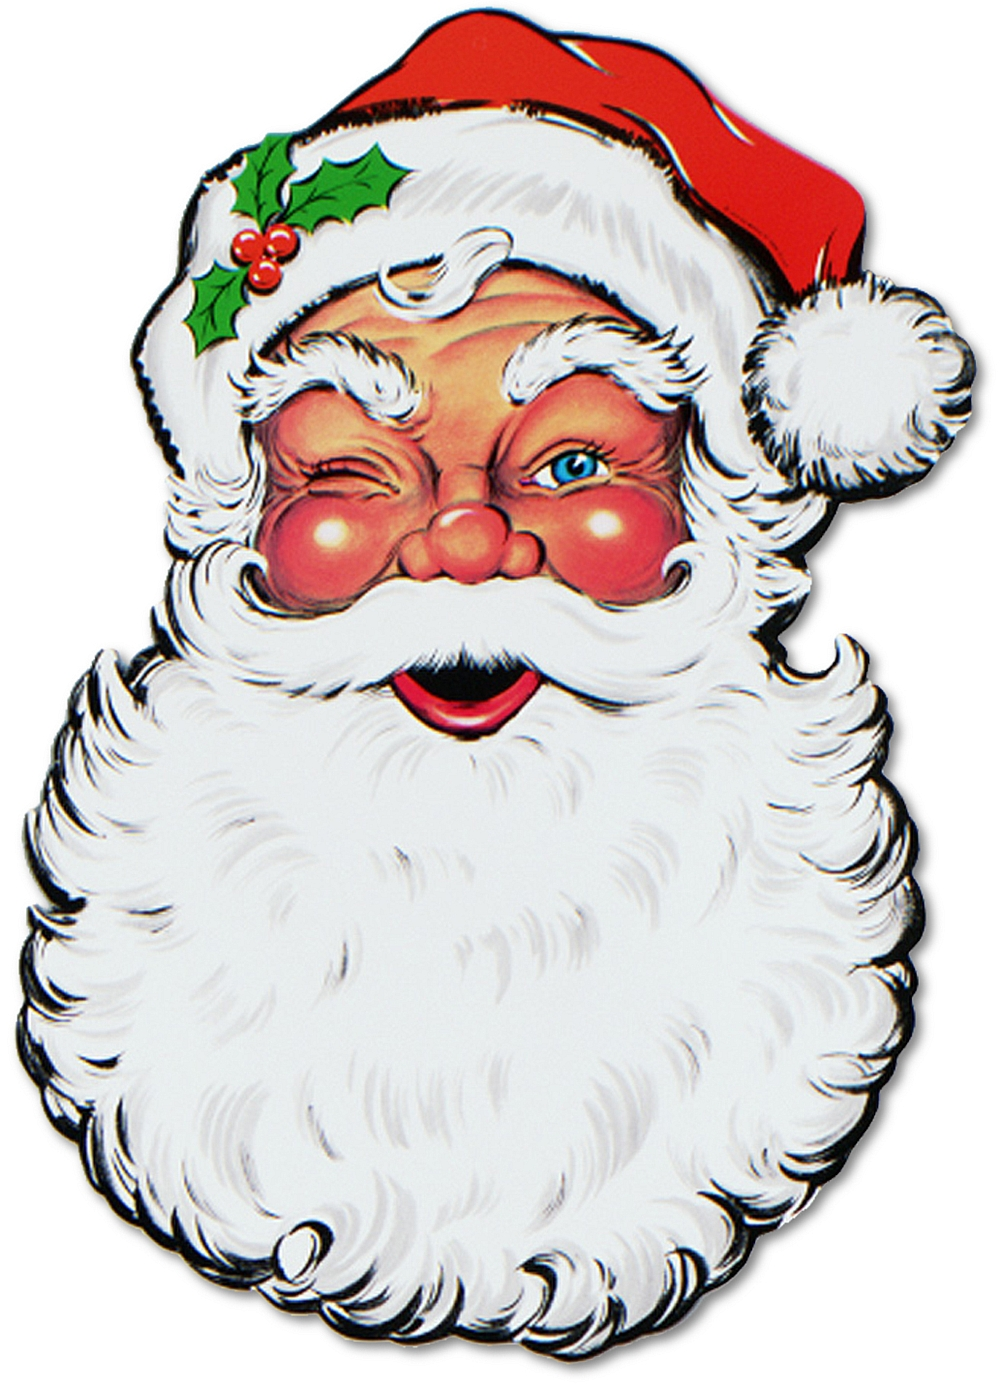 Santa claus face clipart png black and white download Free Santa Face, Download Free Clip Art, Free Clip Art on ... png black and white download